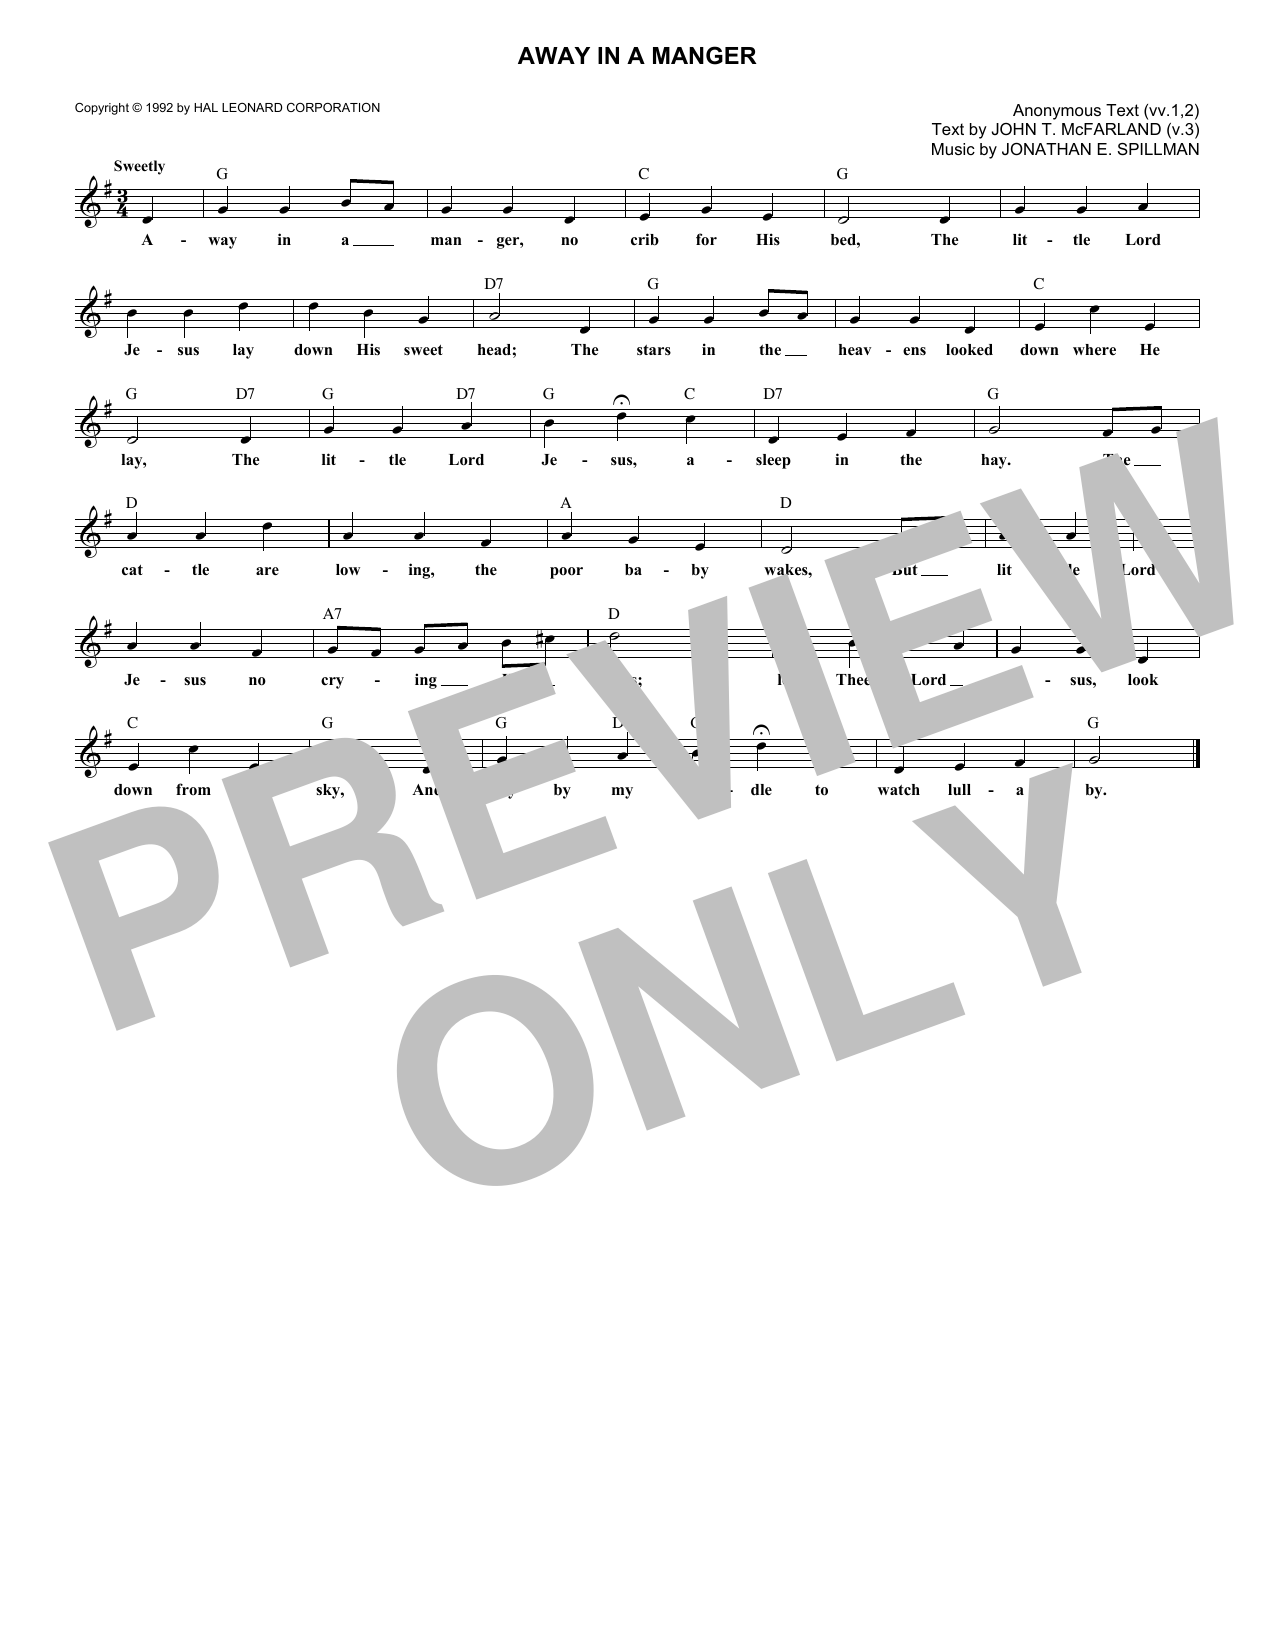 photograph relating to Lyrics to Away in a Manger Printable known as John T. McFarland Absent Inside A Manger Sheet New music Notes, Chords Down load Printable Melody Line, Lyrics Chords - SKU: 181639